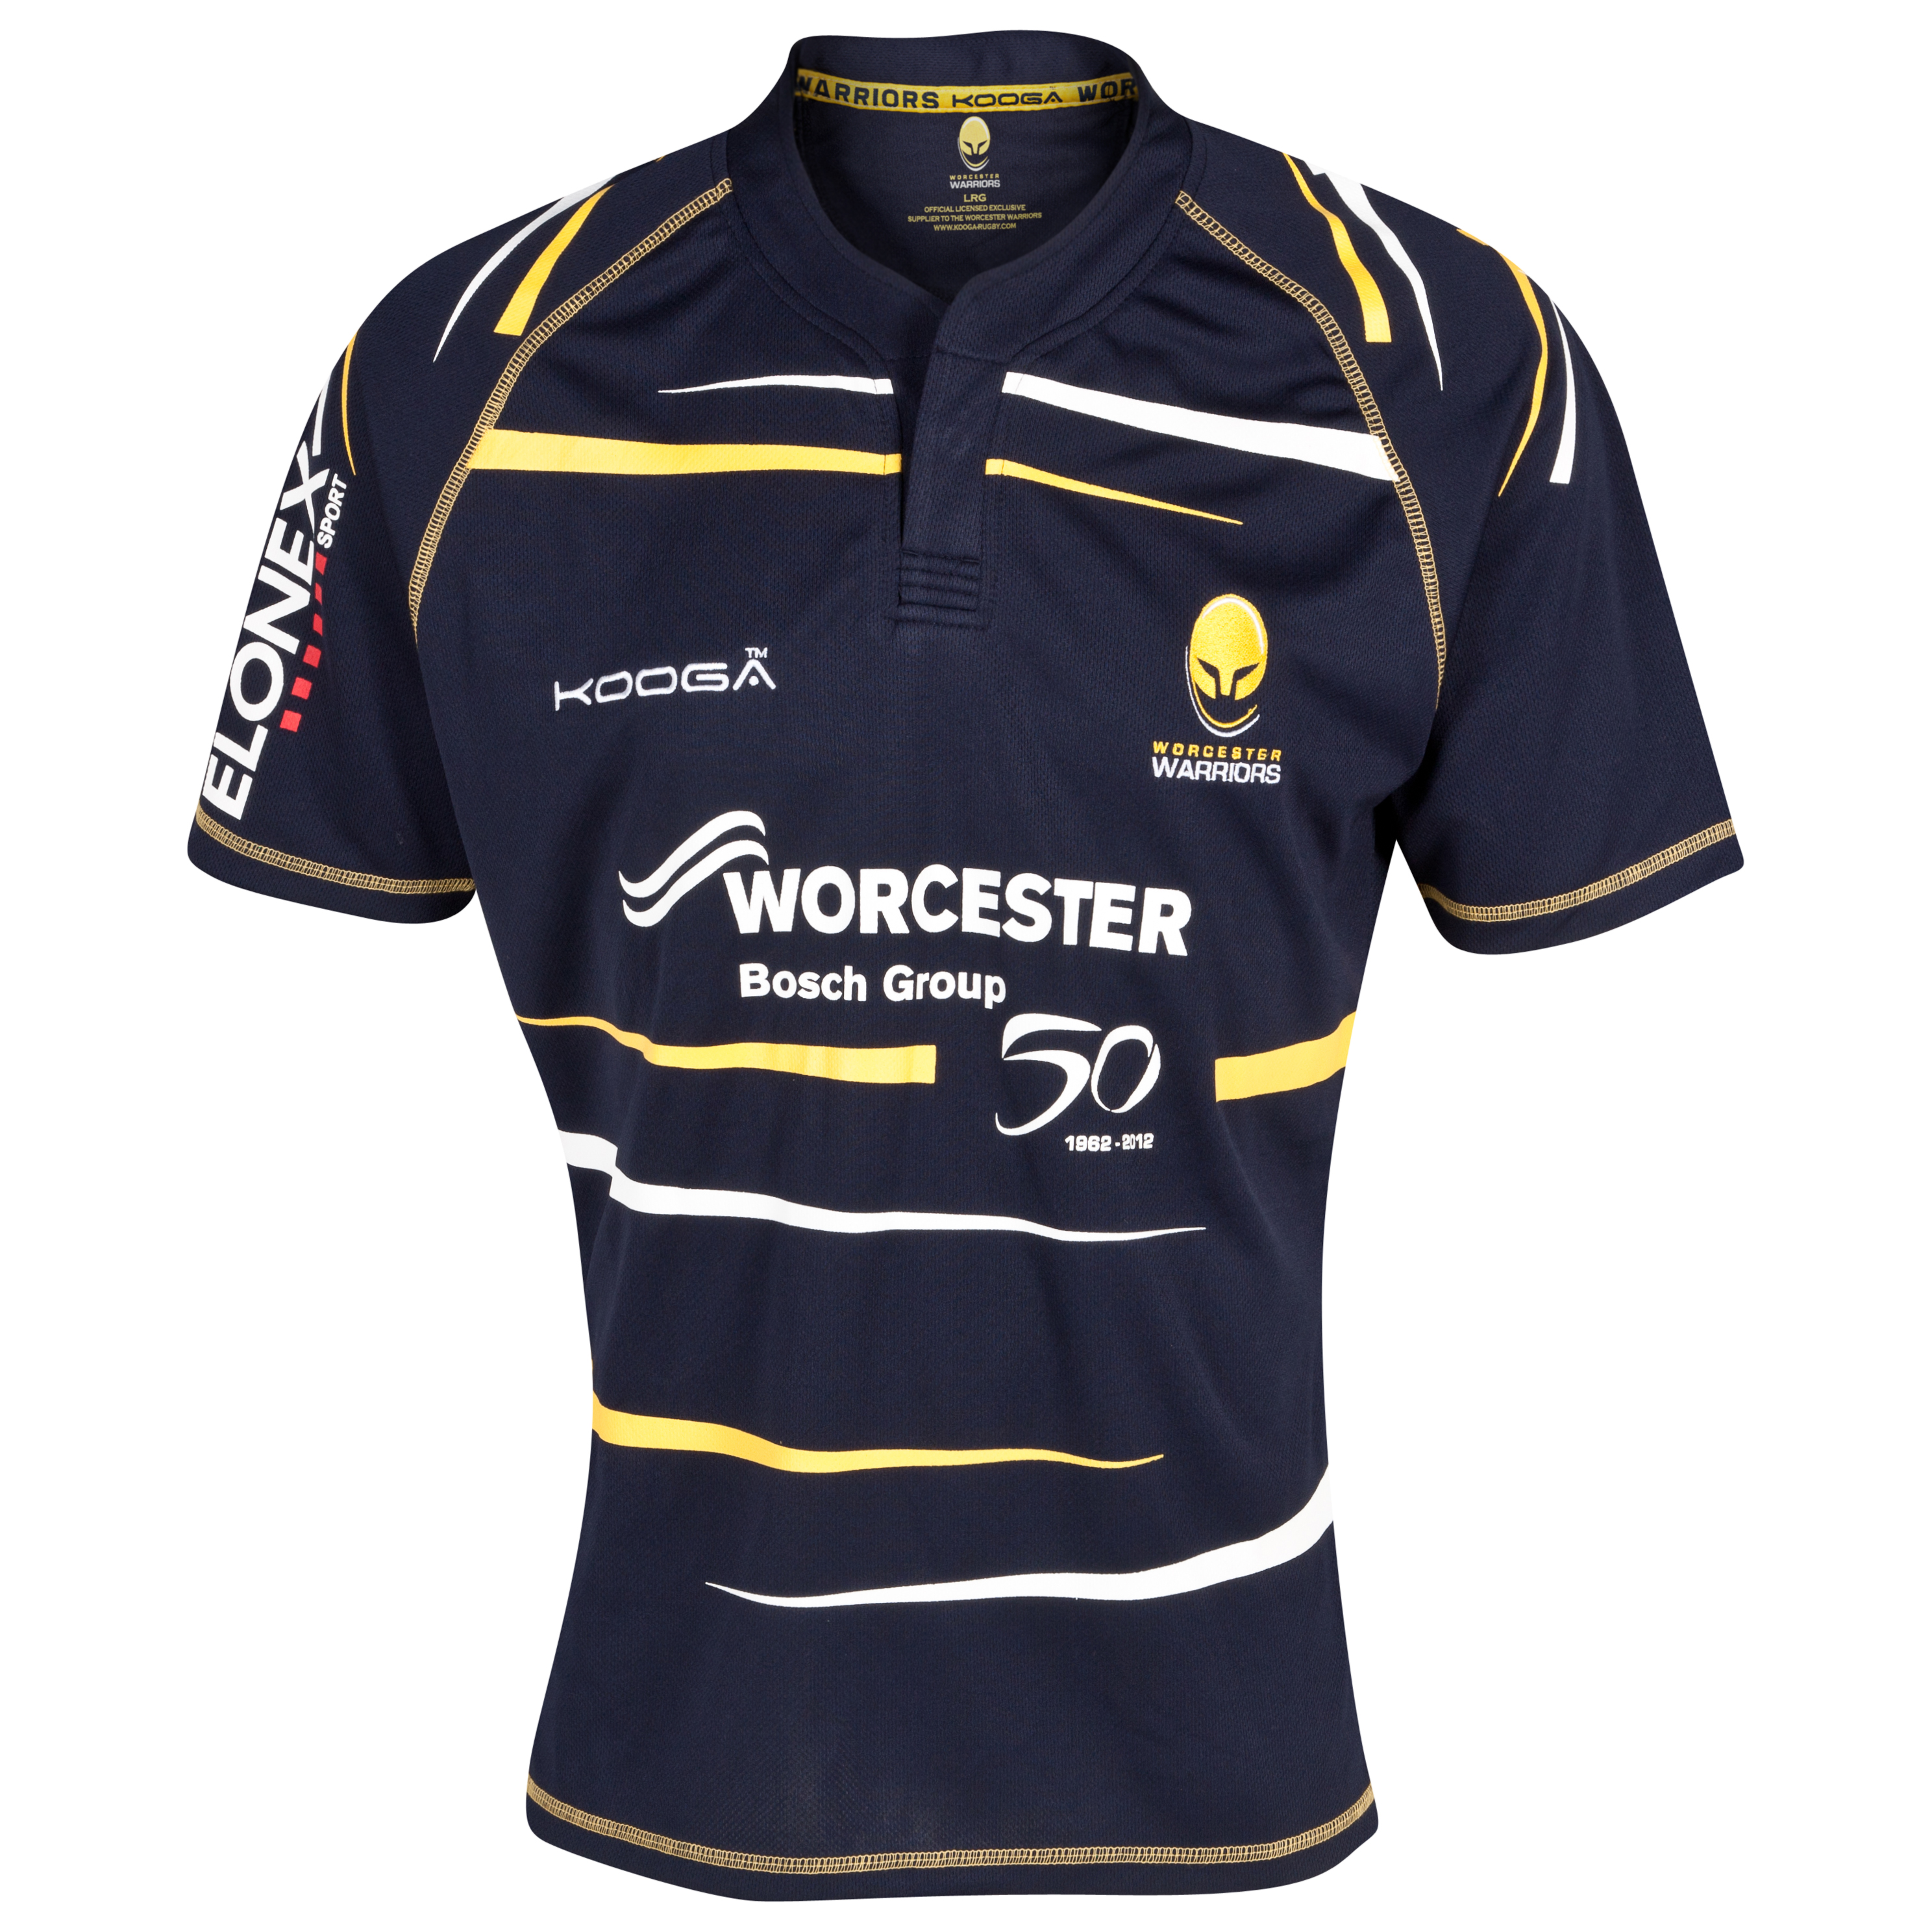 Worcester Warriors Home Supporters Shirt 2012/13